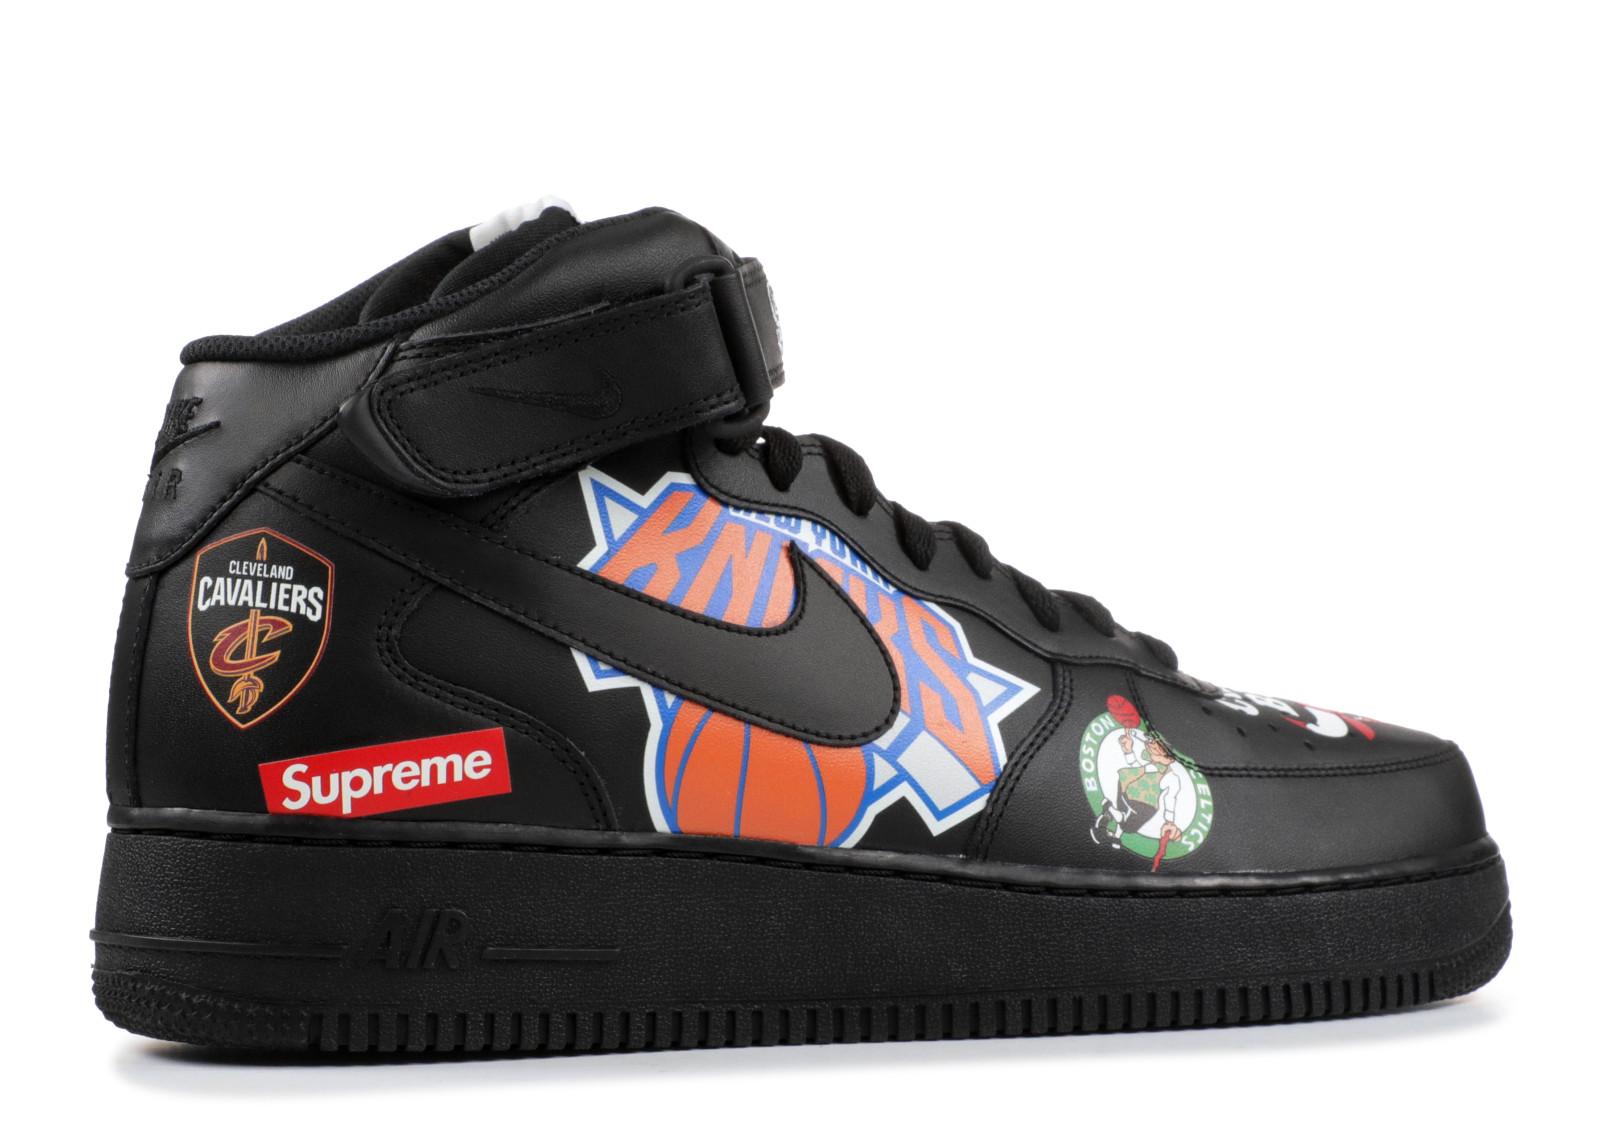 Details about Air Force 1 Mid '07 'Supreme' Aq8017 001 Size 10.5